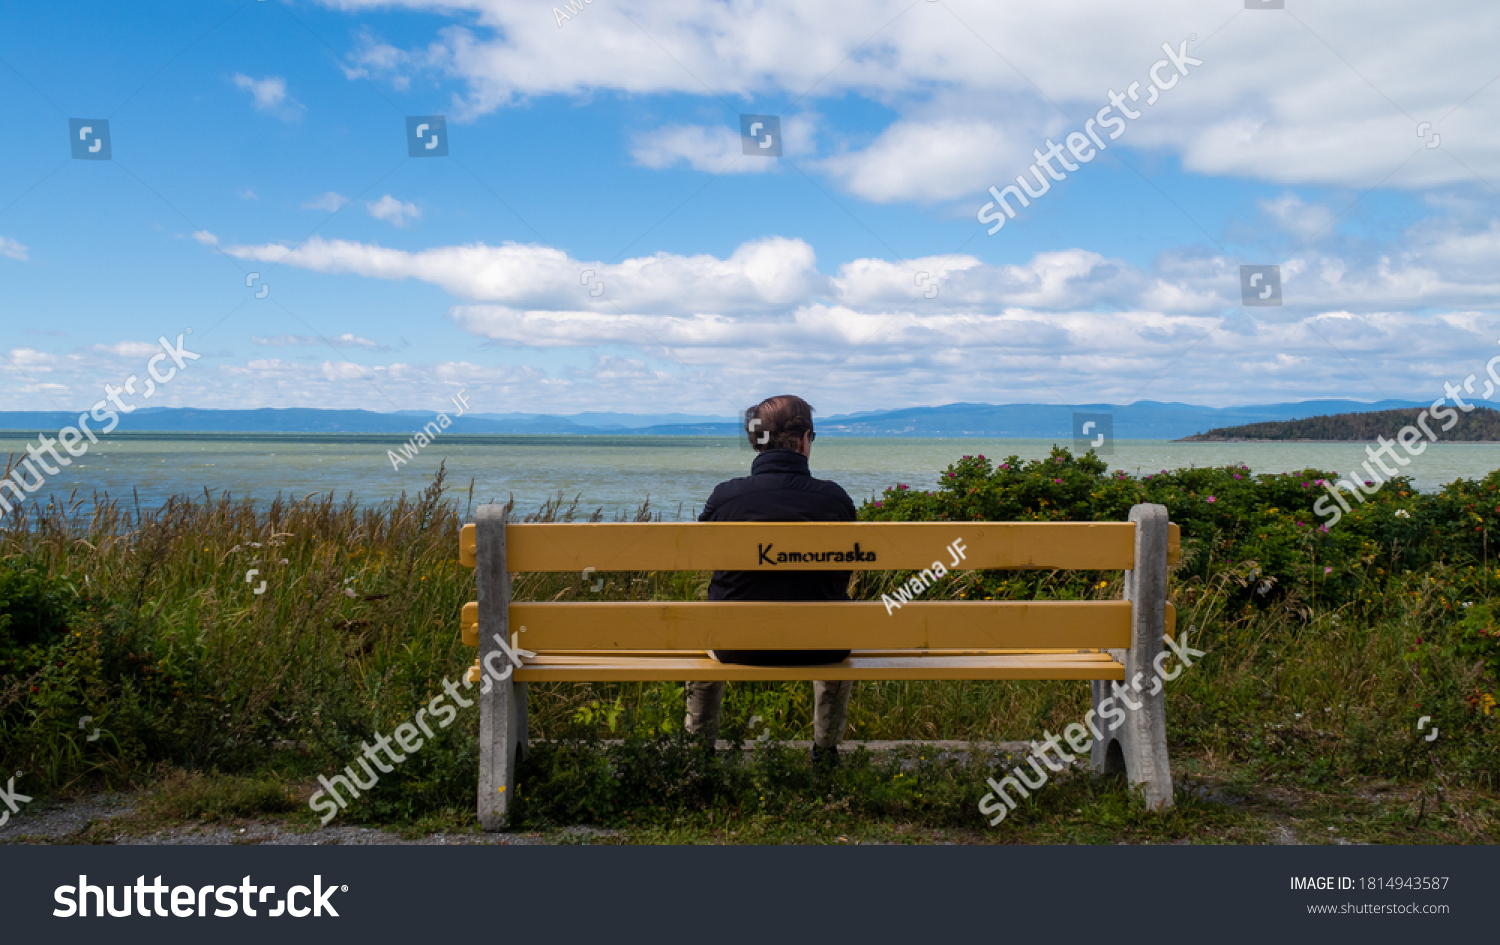 stock-photo-back-view-of-a-man-sitting-a